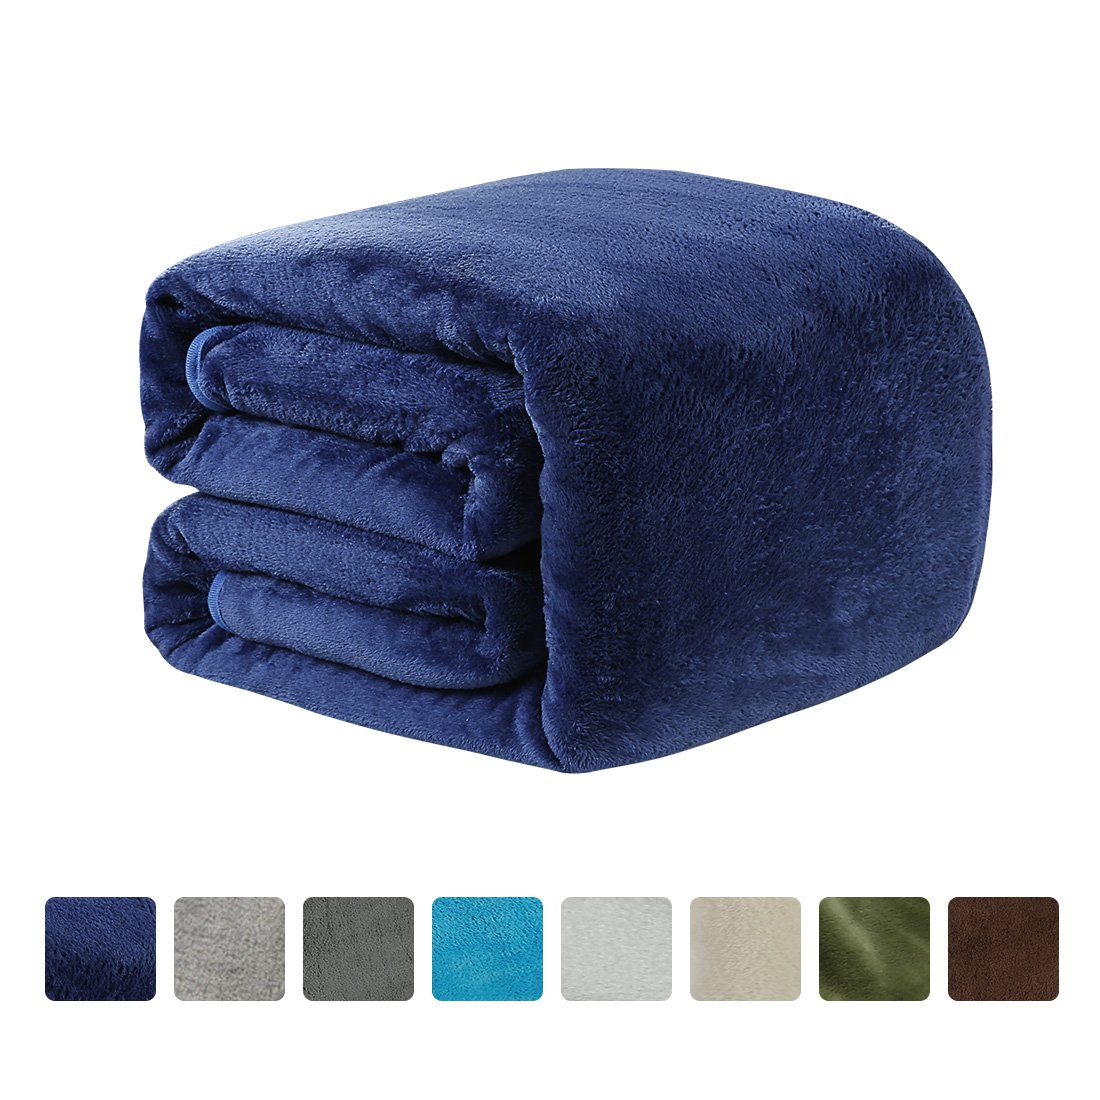 LEISURE TOWN Fleece Blanket Queen Size 330 GSM Soft Summer Cooling Breathable Luxury Plush Travel Camping Blankets Lightweight Sofa Couch Bed, 90 90 Inches, Royal Blue